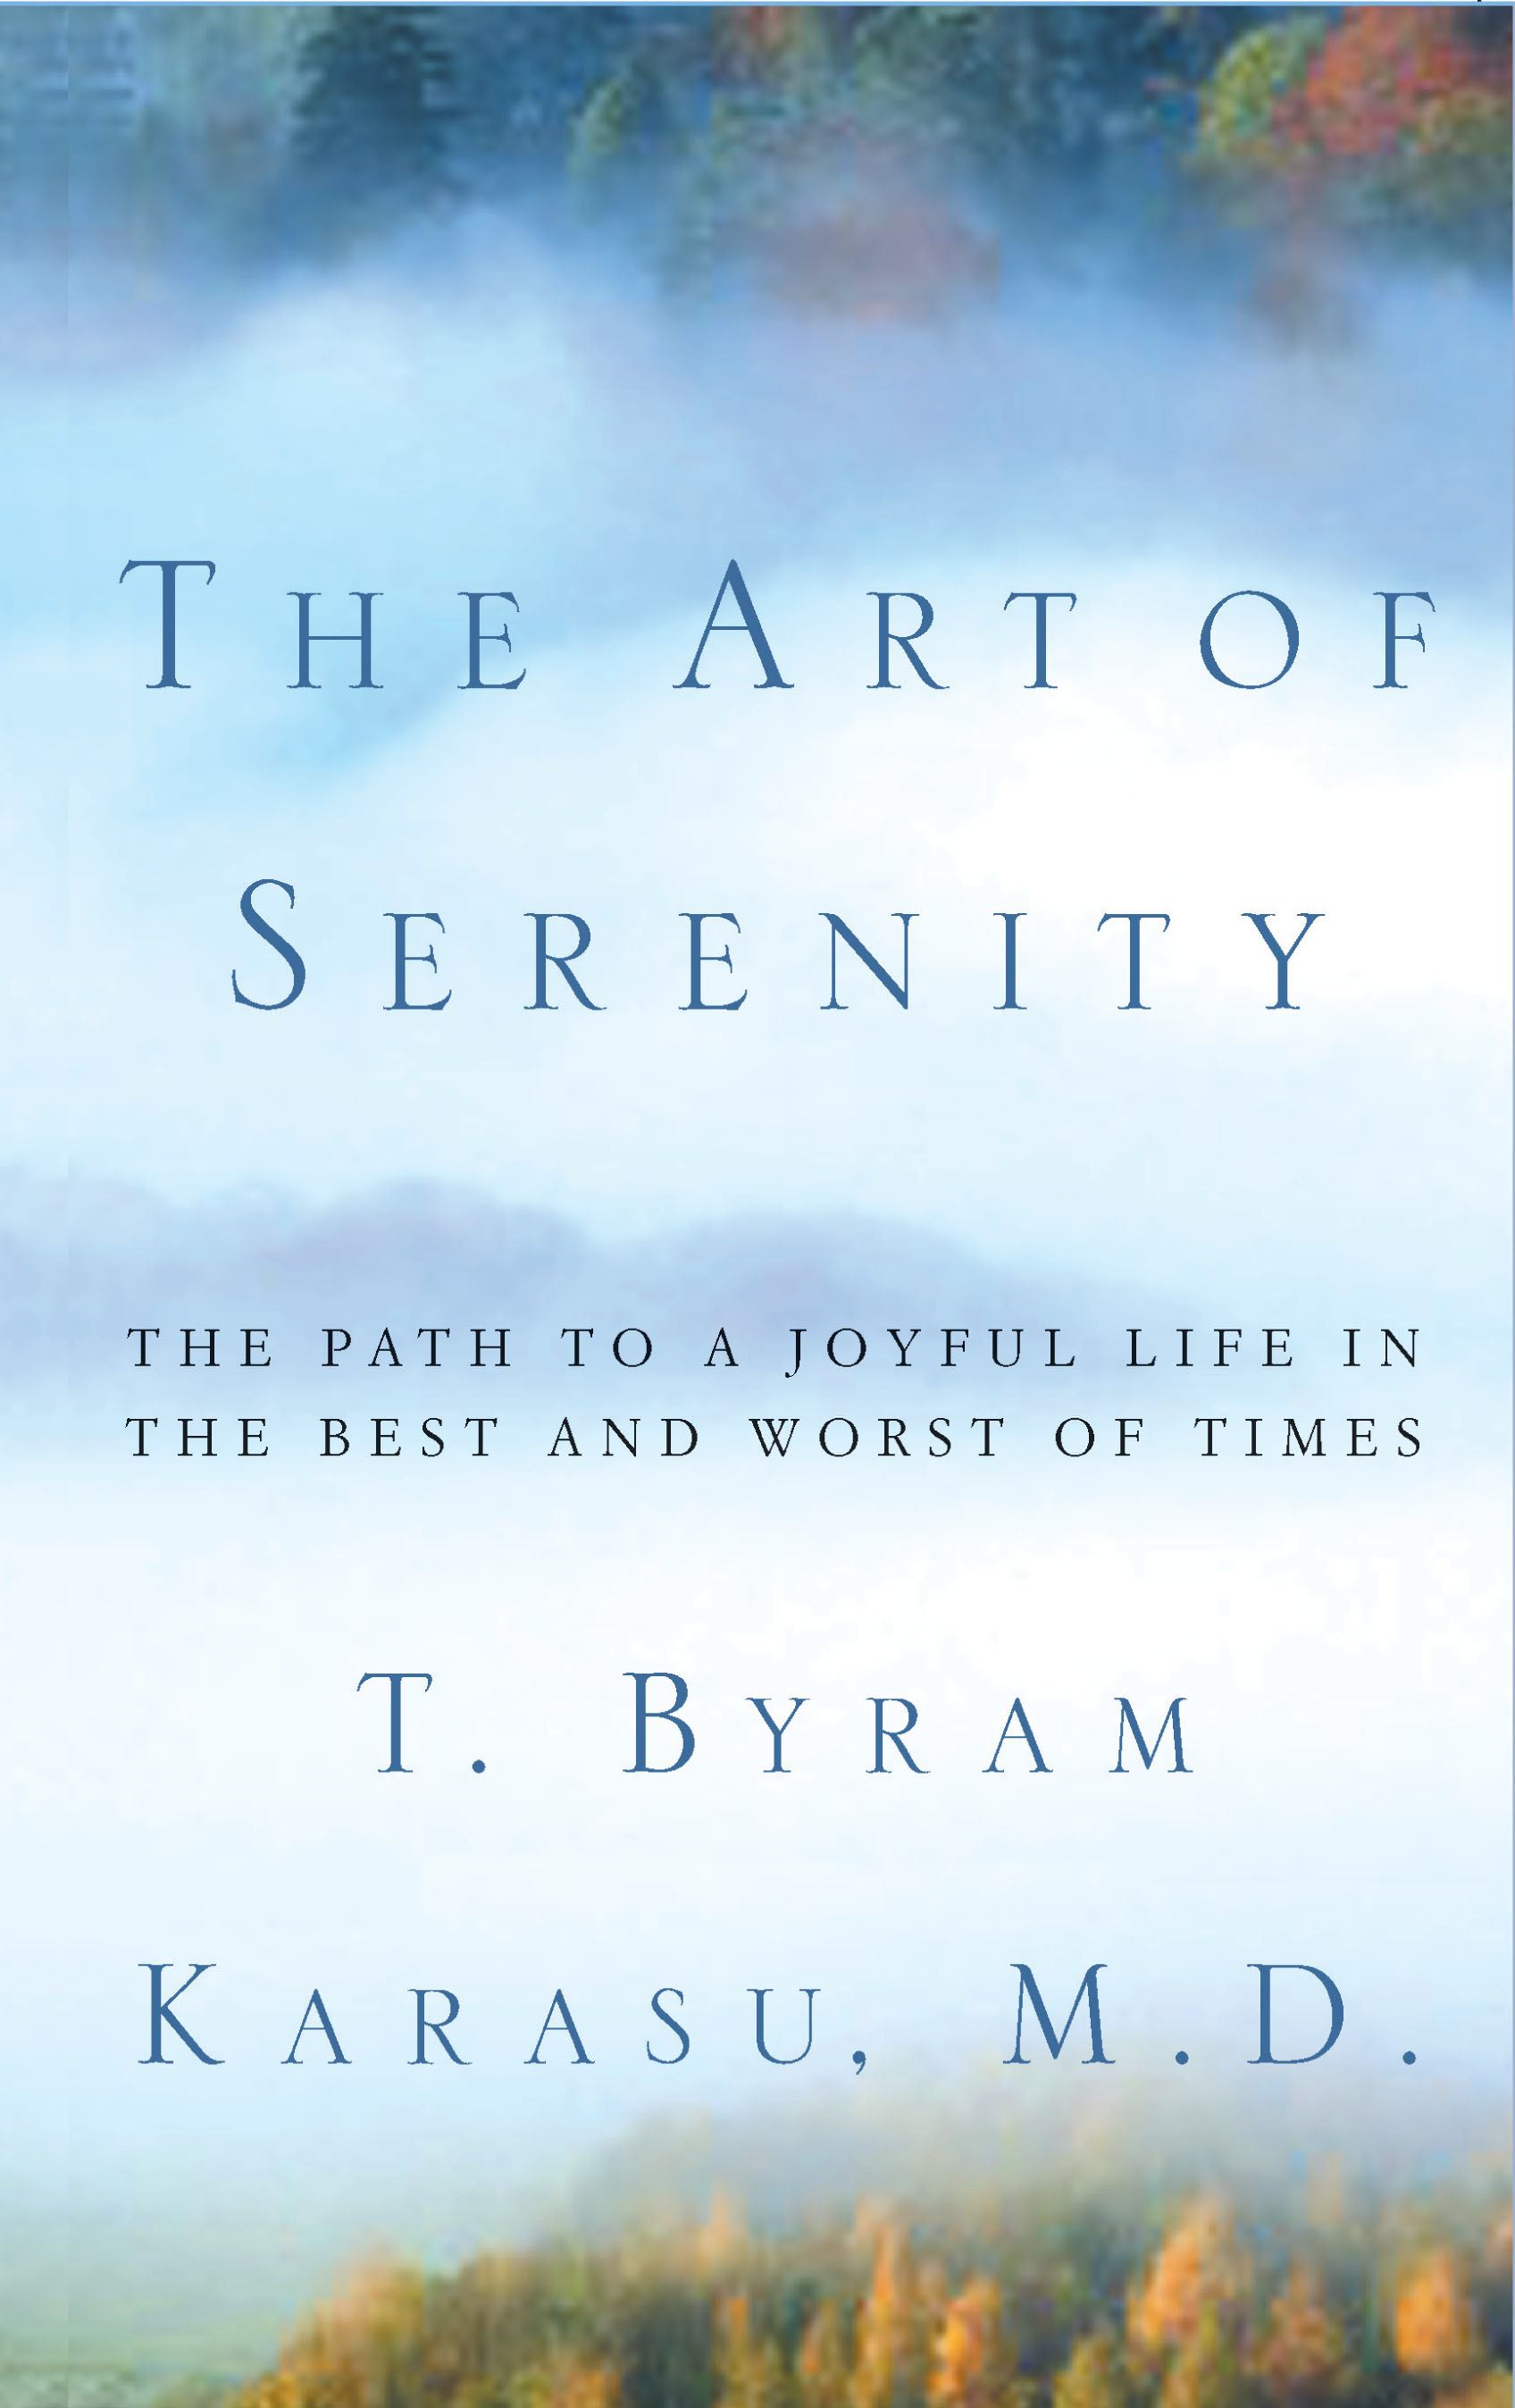 The Art of Serenity The Path to a Joyful Life in the Best and Worst of Times